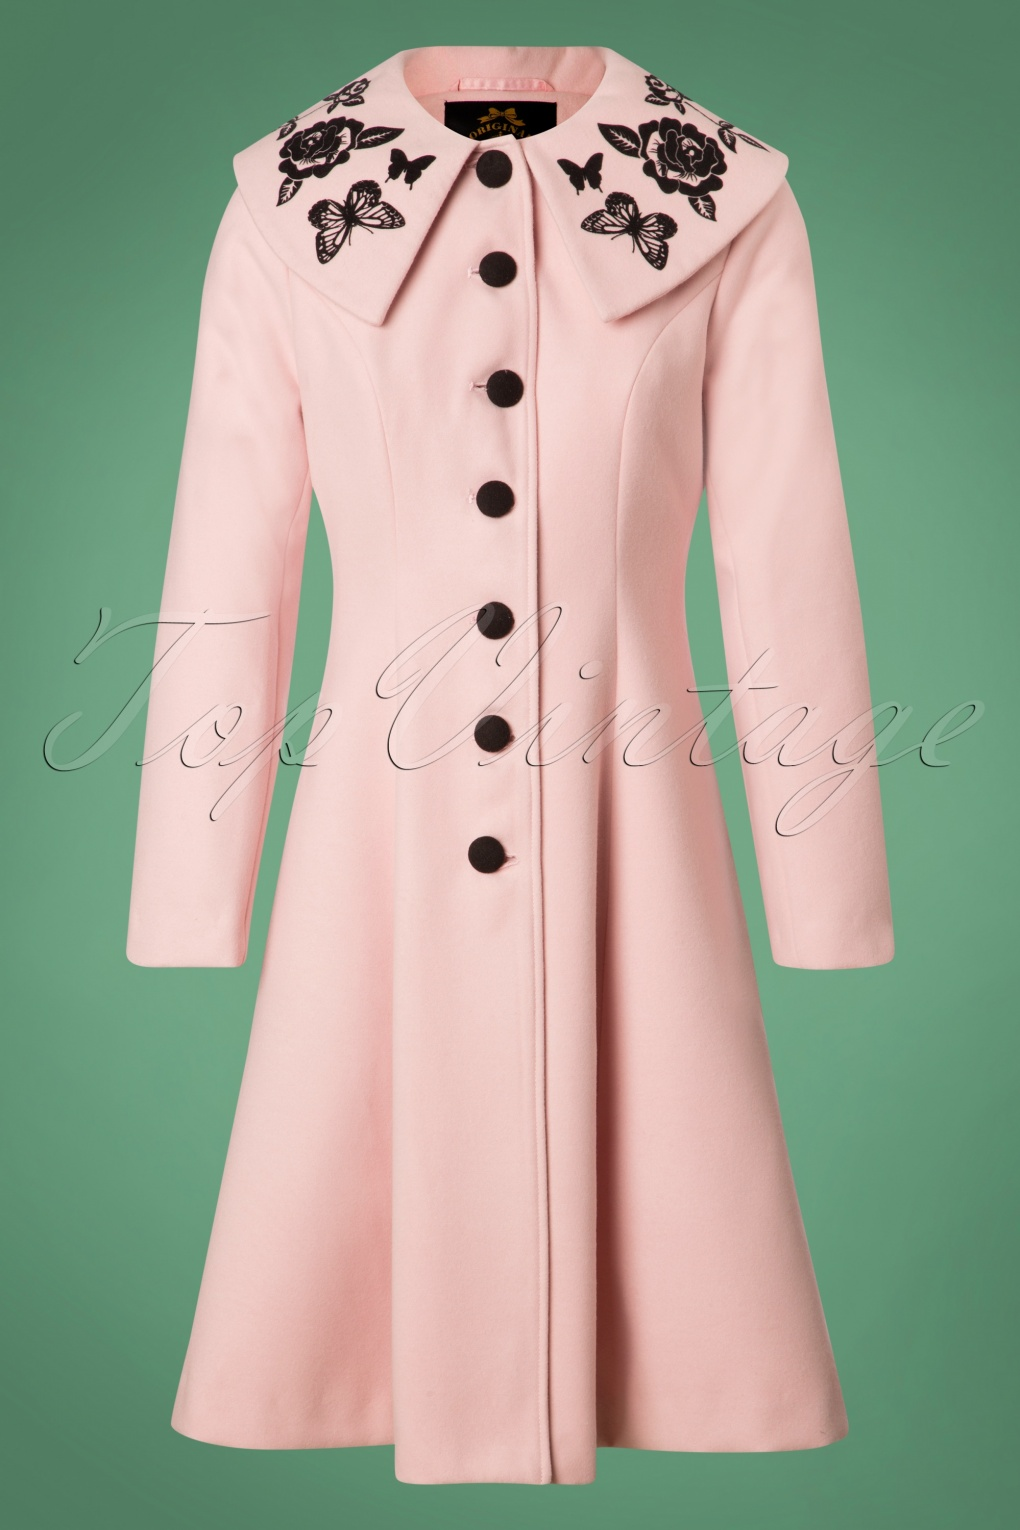 1950s Jackets, Coats, Bolero | Swing, Pin Up, Rockabilly 50s Hermione Coat in Pink £118.27 AT vintagedancer.com